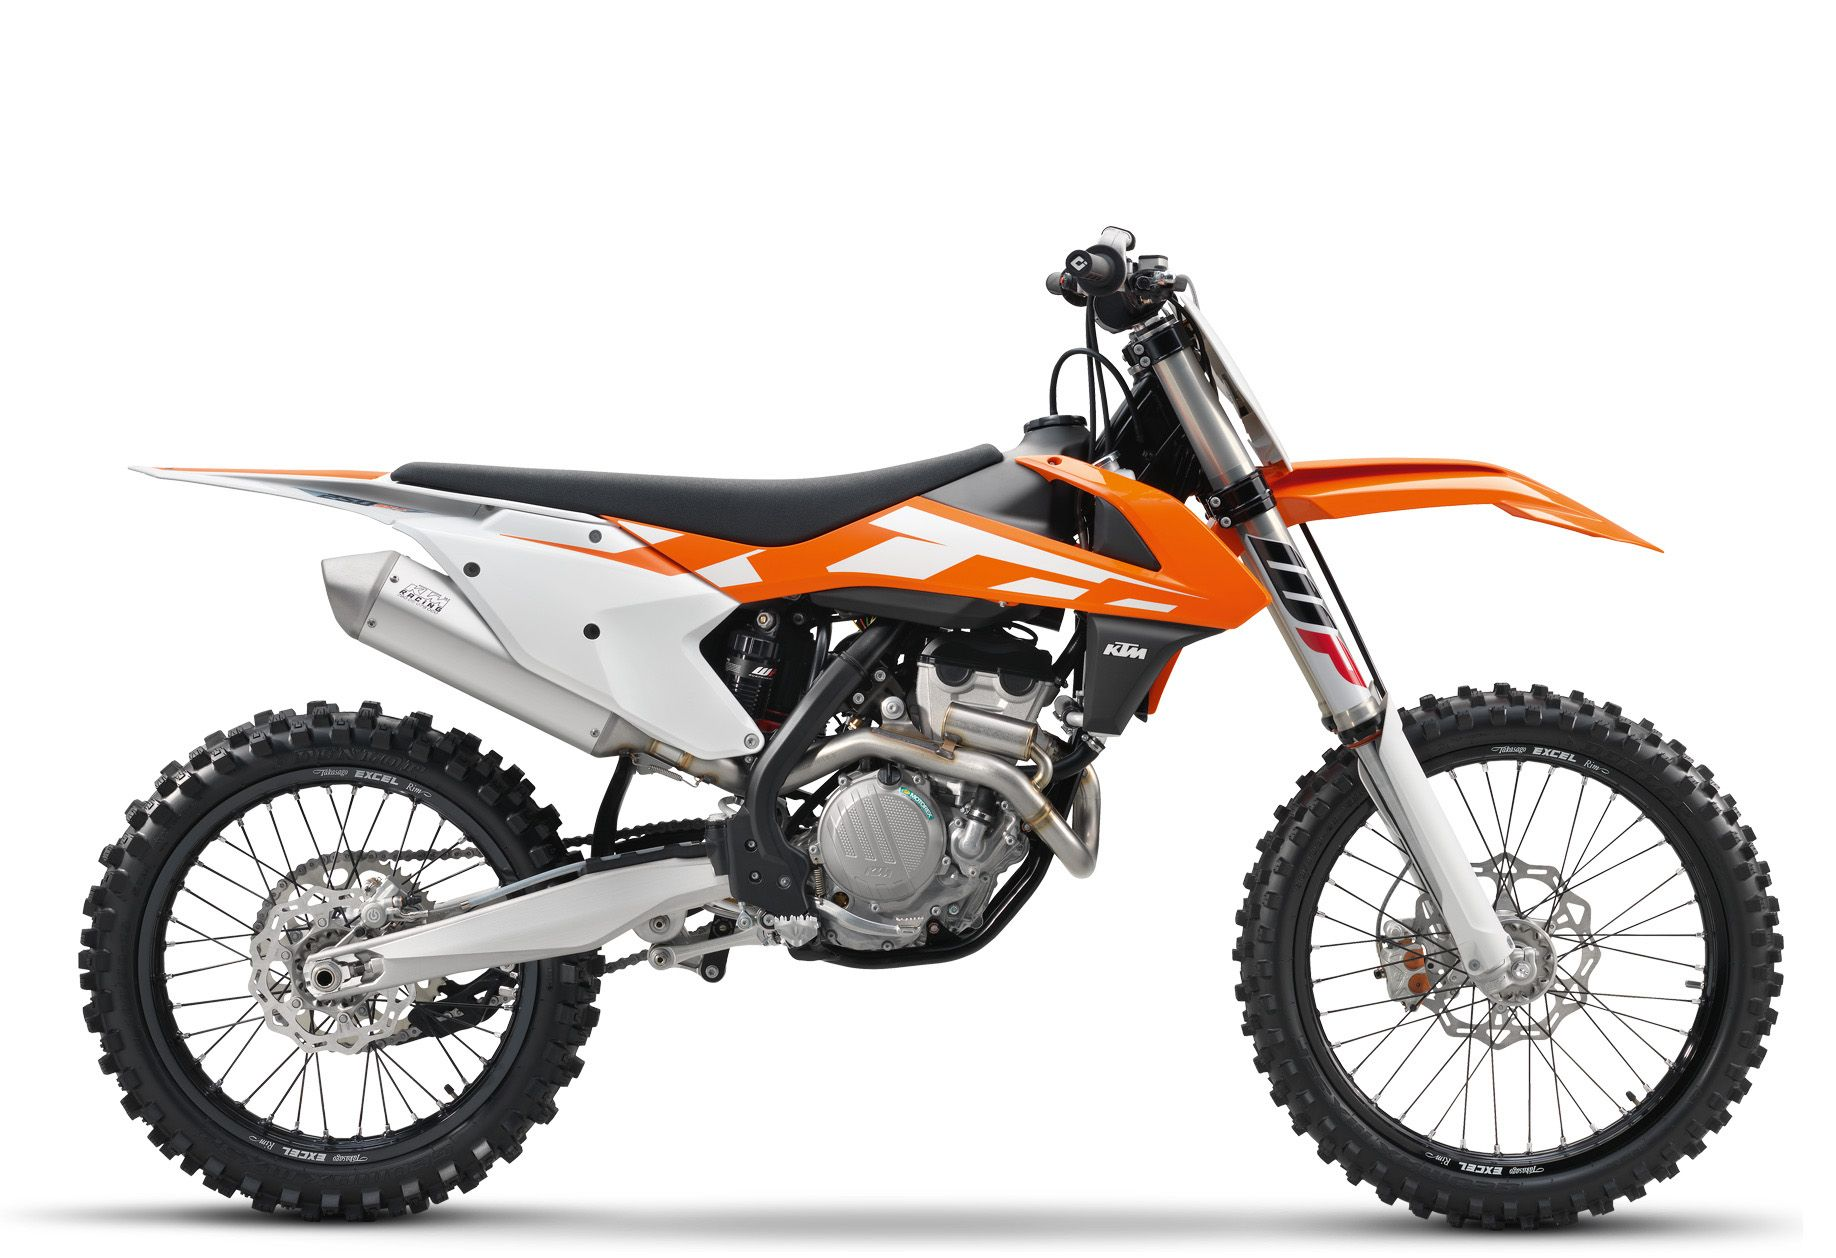 Pin By Ahmed Shiek On Ktm Sxf250 2016 Ktm Motocross Ktm 250 Ktm